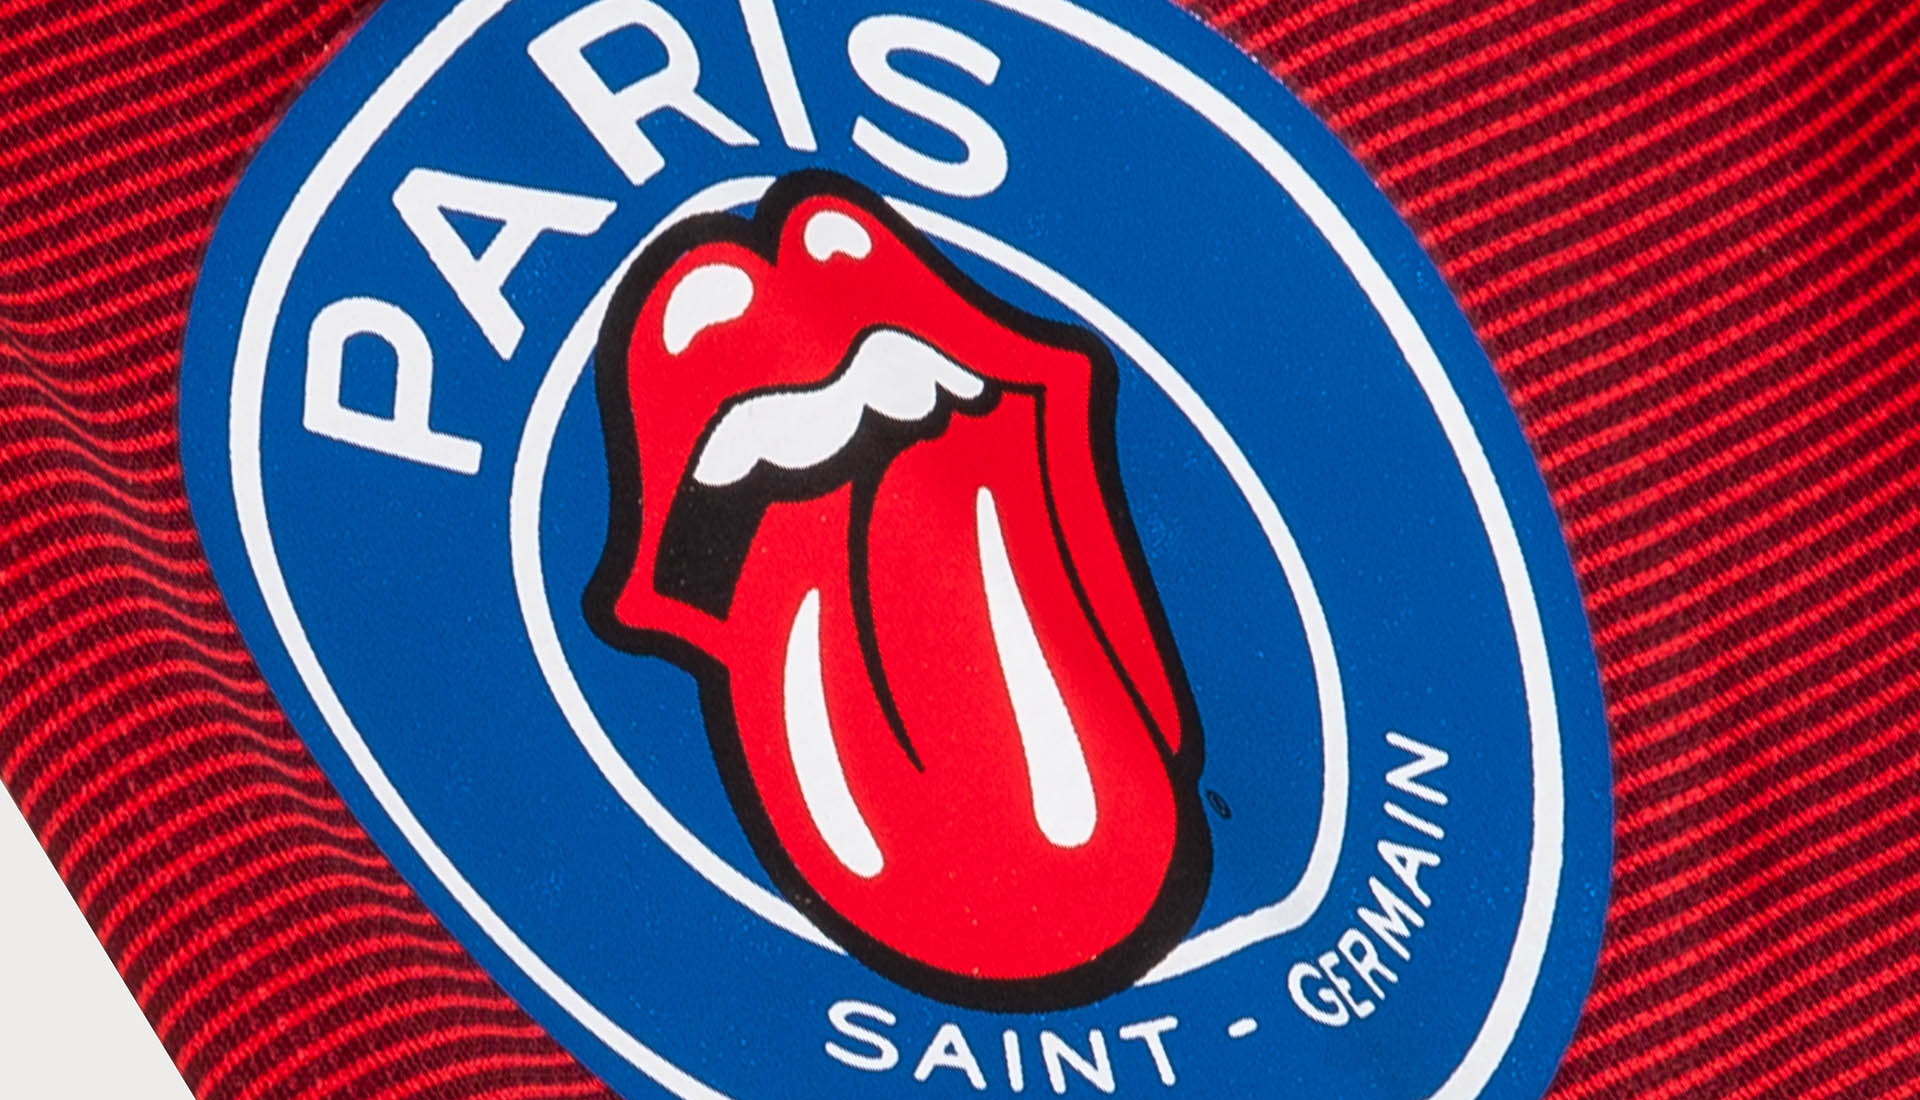 Paris Saint Germain And The Rolling Stones Collaborate For Special